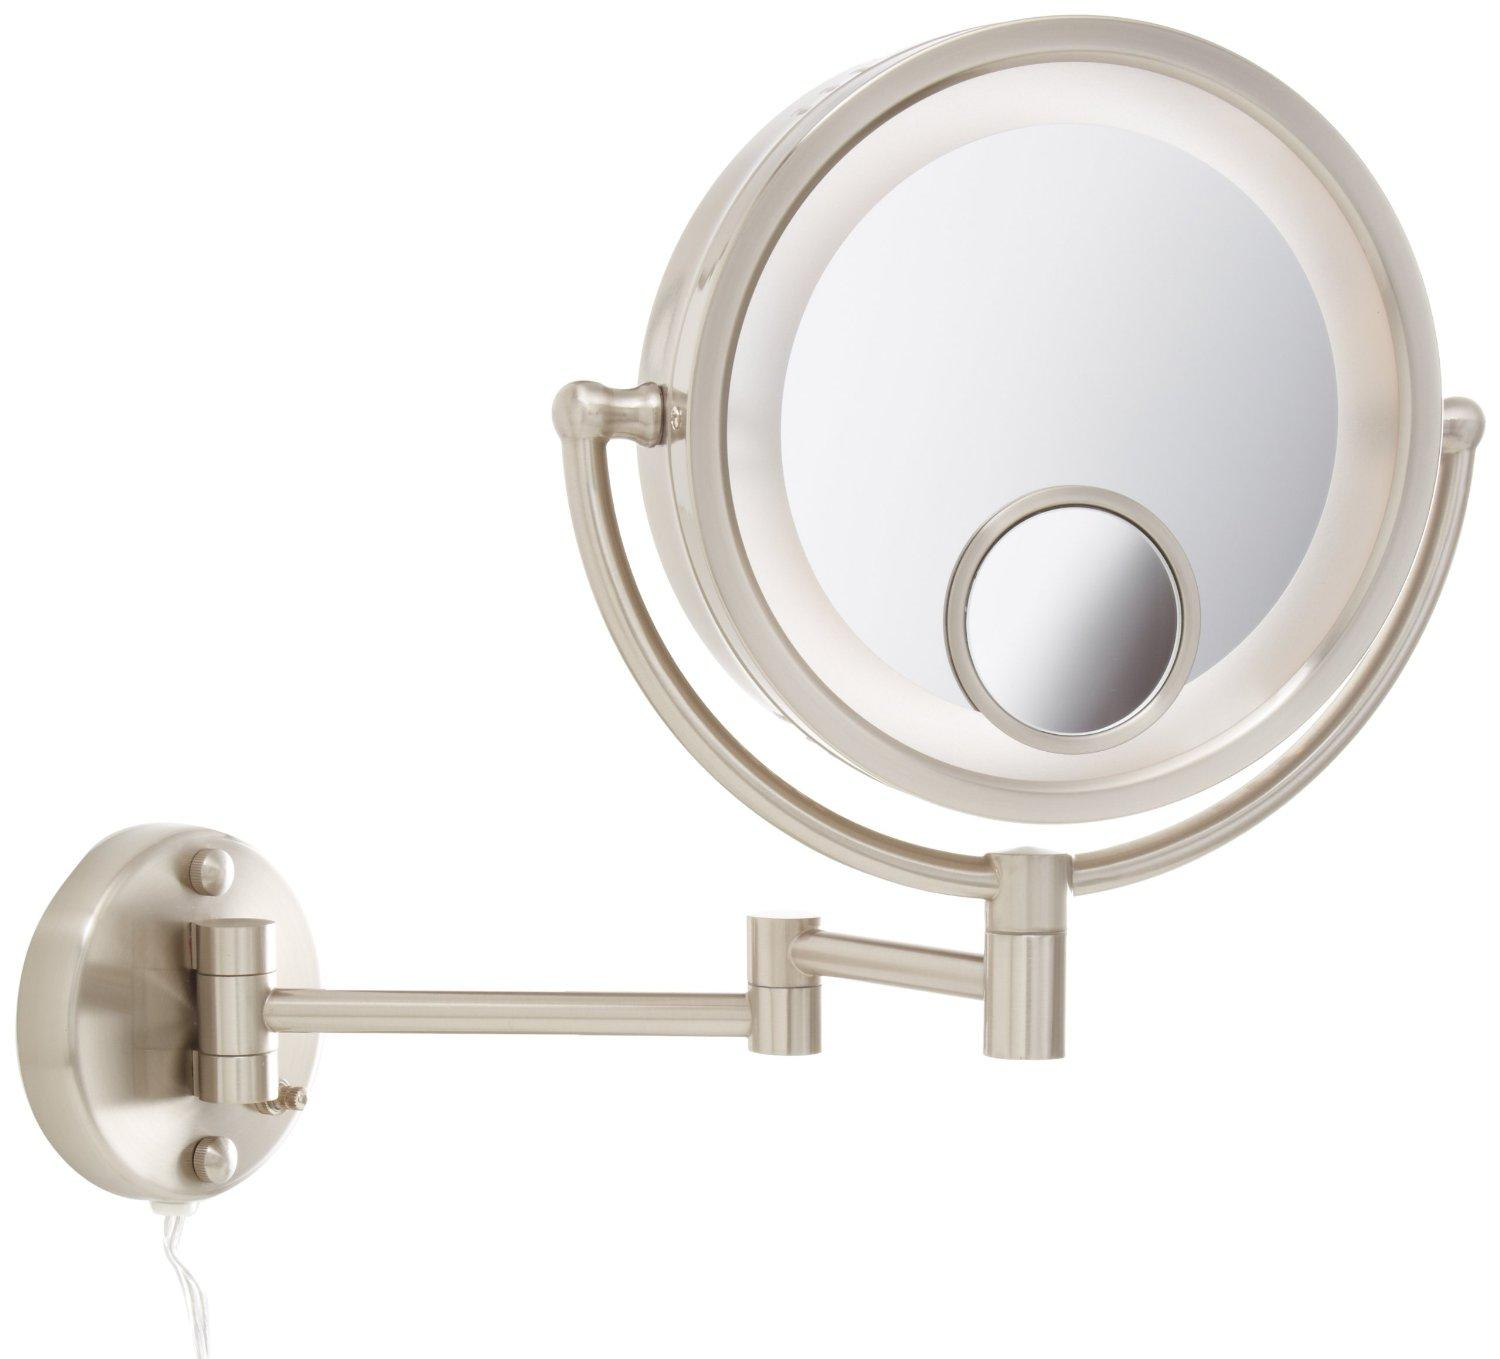 Amazon.com : Jerdon HL8515N 8.5-Inch Lighted Wall Mount Makeup ...